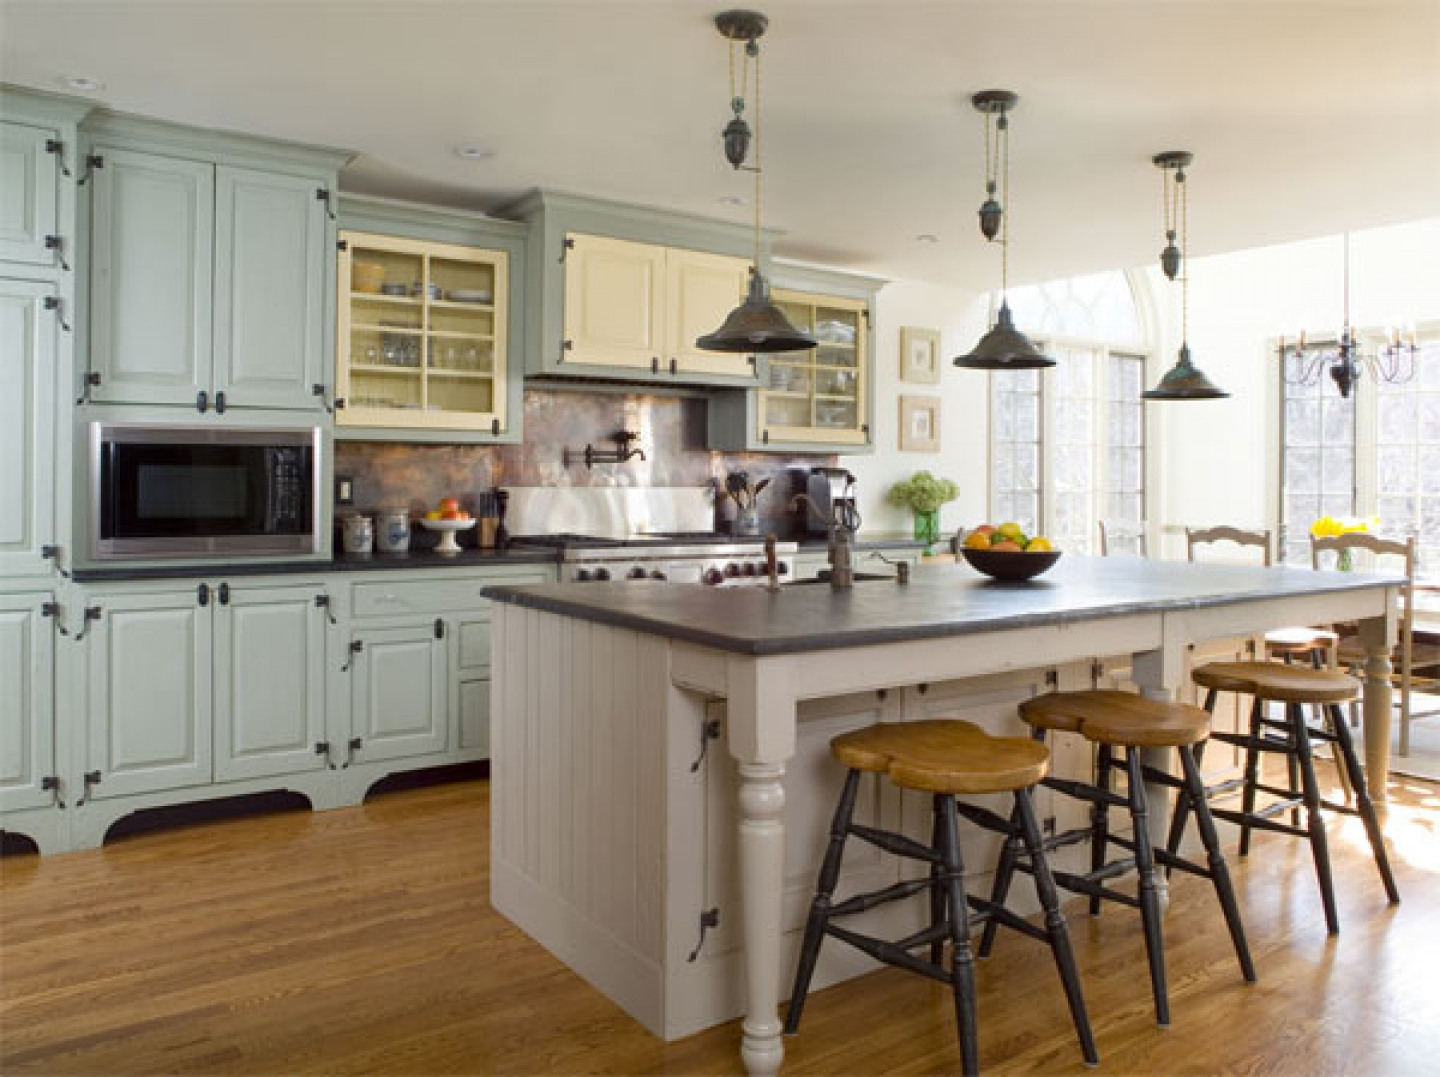 Featured Image of Country Kitchen With Classic Breakfast Bar Style